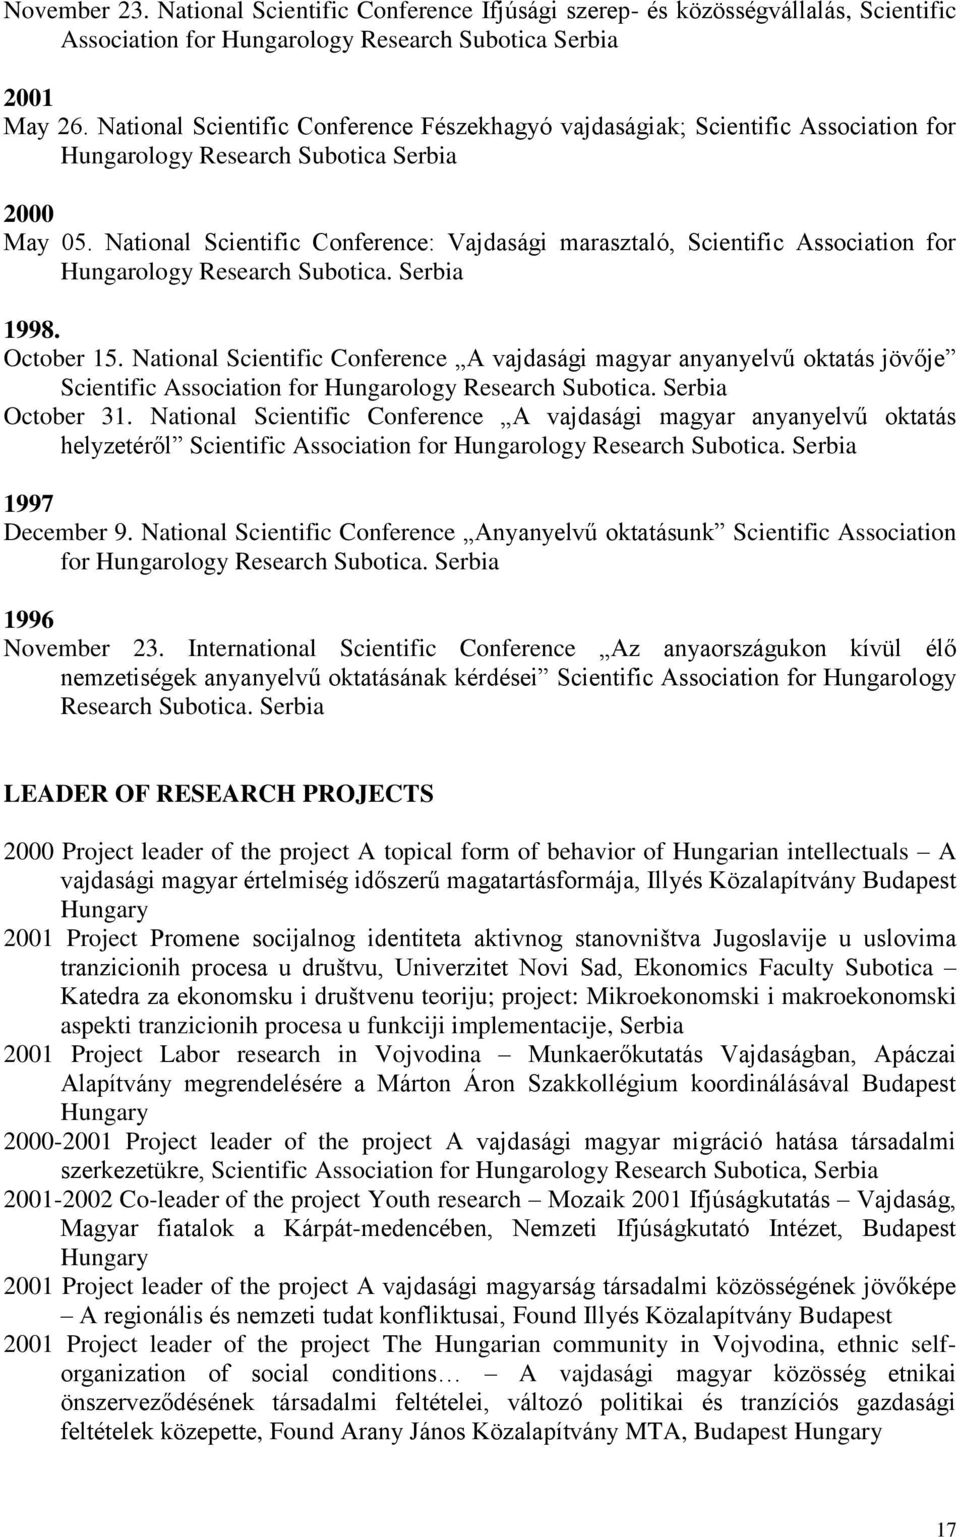 National Scientific Conference: Vajdasági marasztaló, Scientific Association for Hungarology Research Subotica. Serbia 1998. October 15.